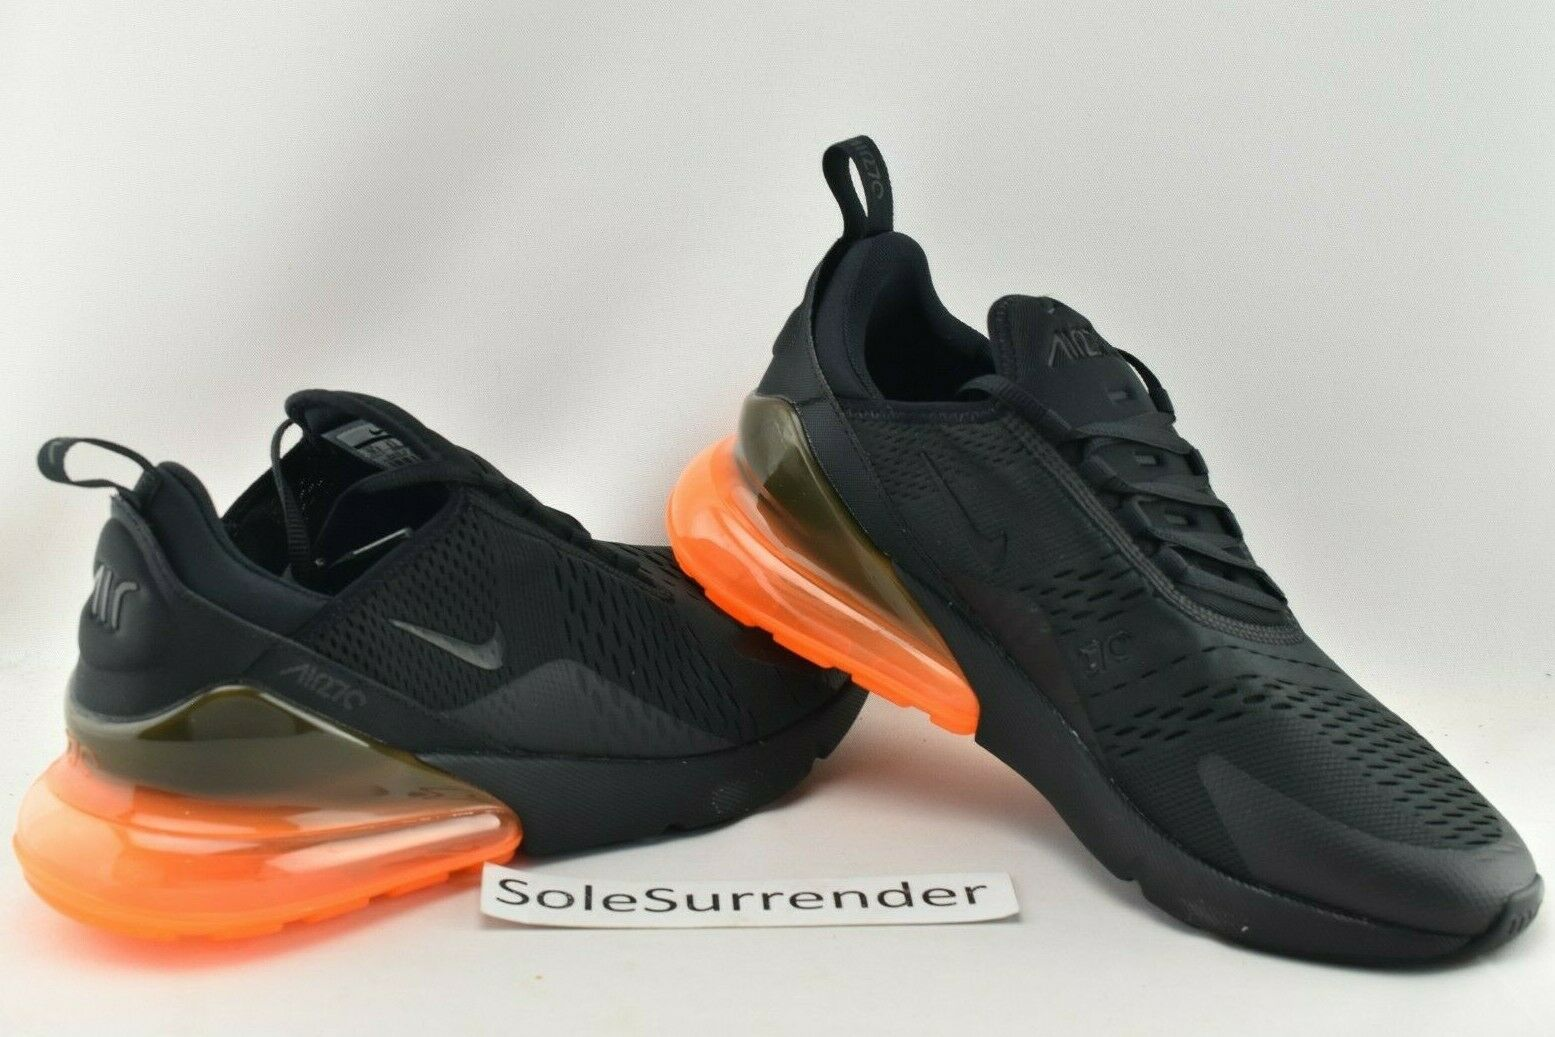 100% authentic 01b8b a3c13 Nike Air Max 270 Black Total Orange SF Giants Halloween Ah8050 008 Sz 10.5